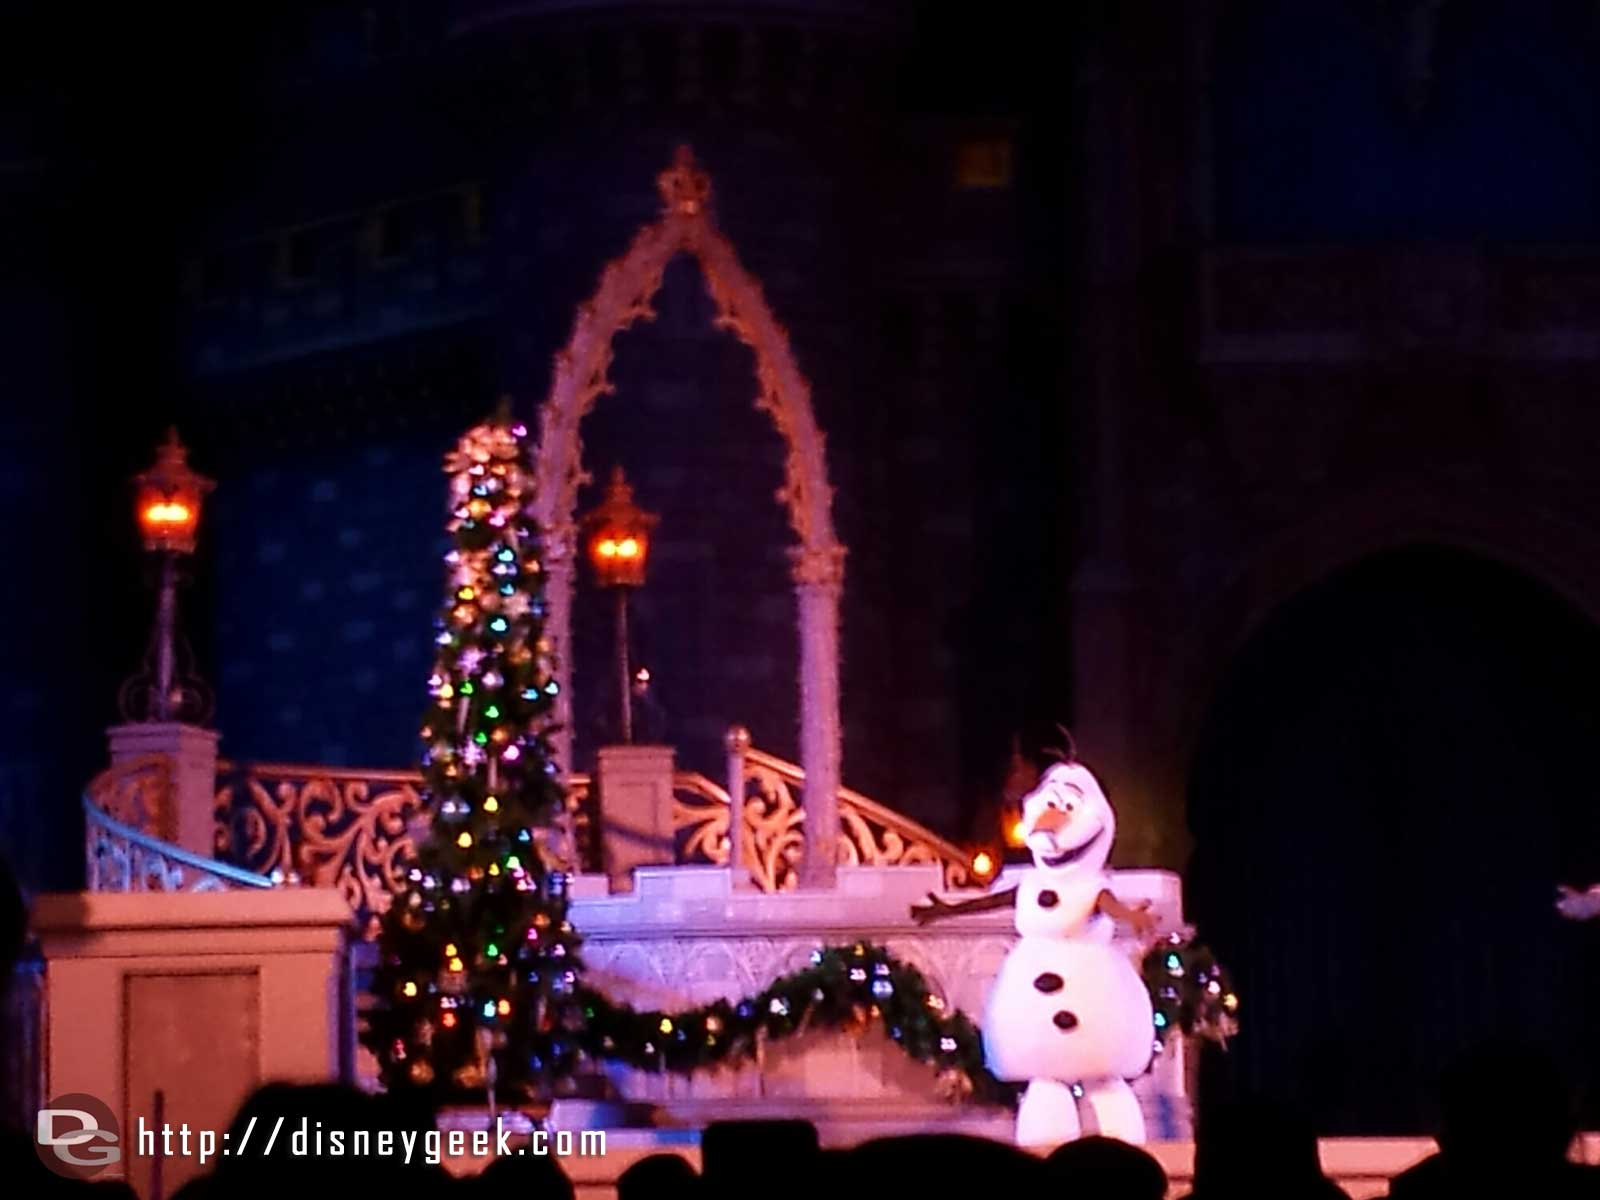 Olaf during a #Frozen Holiday Wish @ #WDW Magic Kingdom